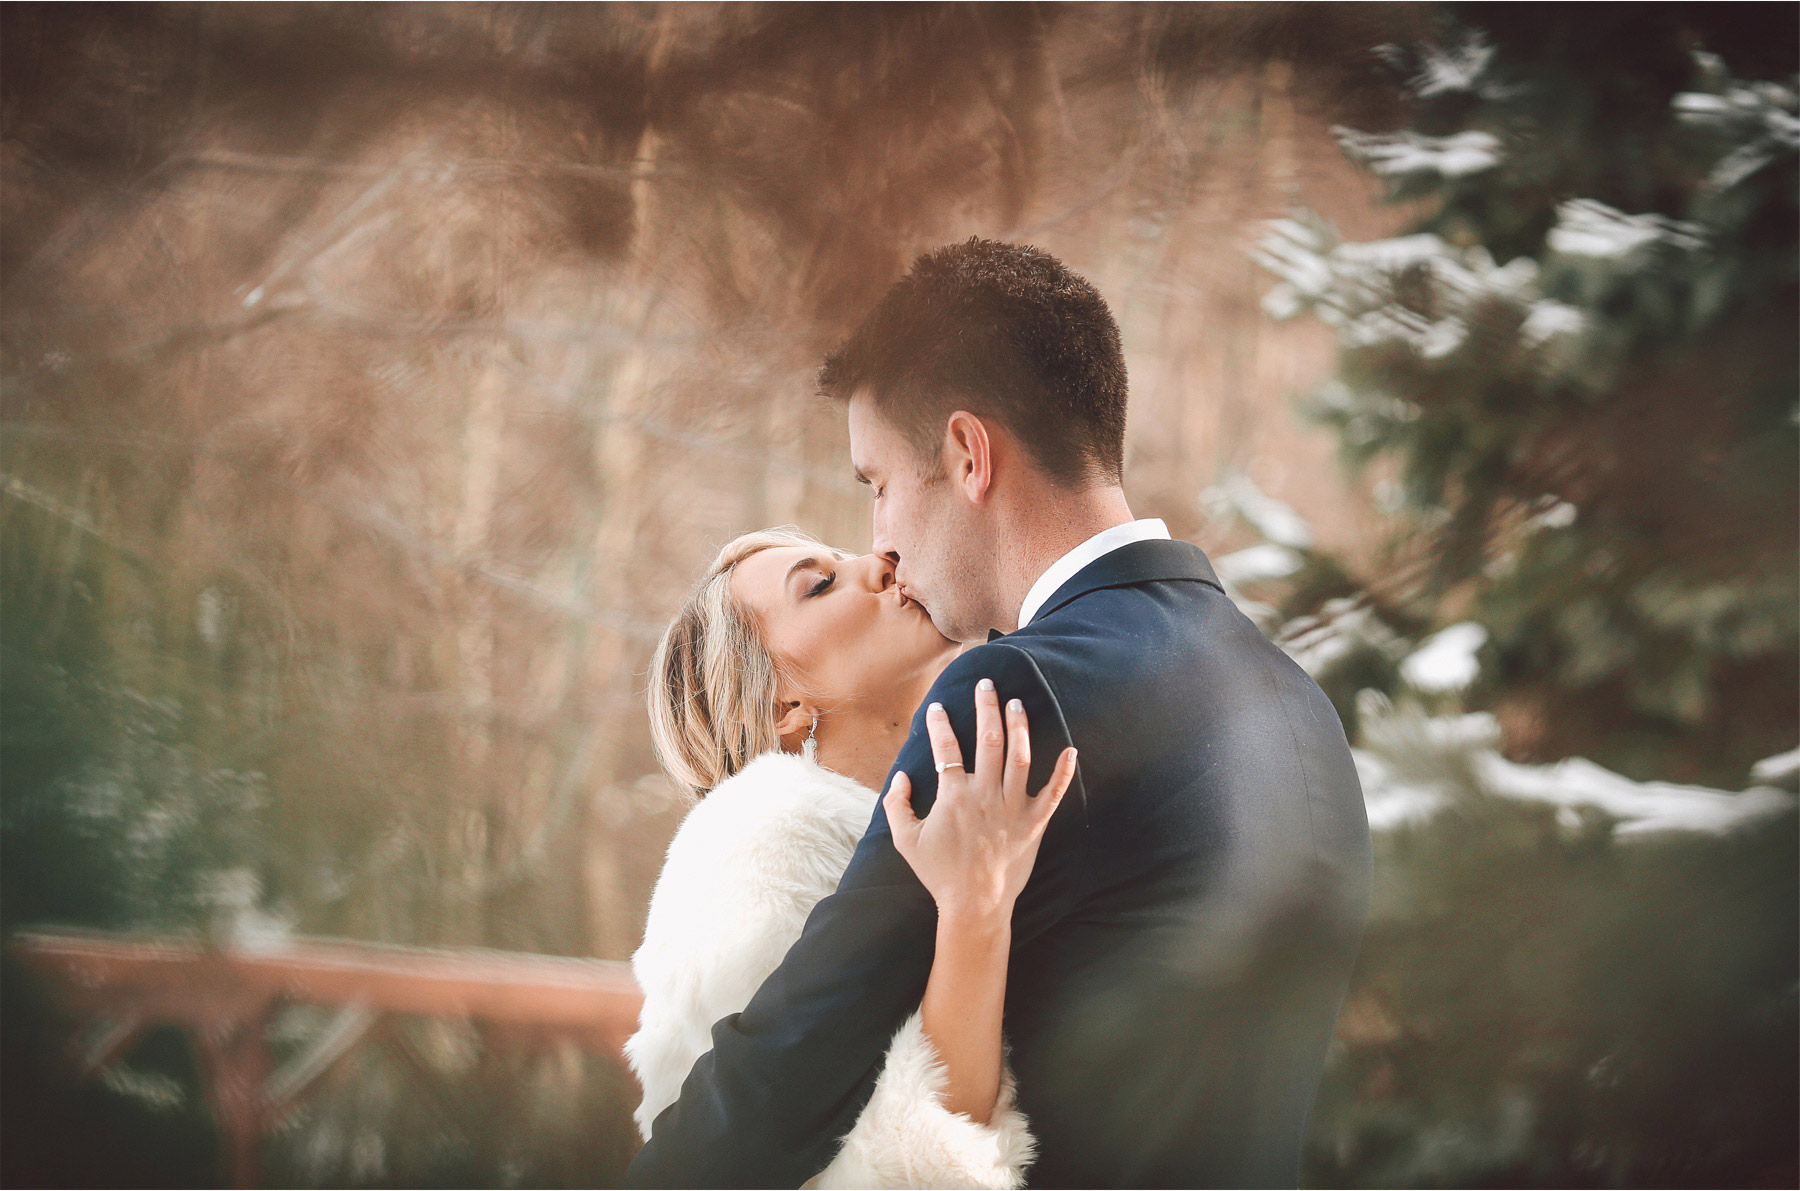 11-Watchung-New-Jersey-Wedding-Photographer-by-Andrew-Vick-Photography-Winter-Saint-Marys-Chuch-Stony-Hill-First-Meeting-Look-Bride-Groom-Fur-Coat-Kiss-Vintage-Alexia-and-Justin.jpg